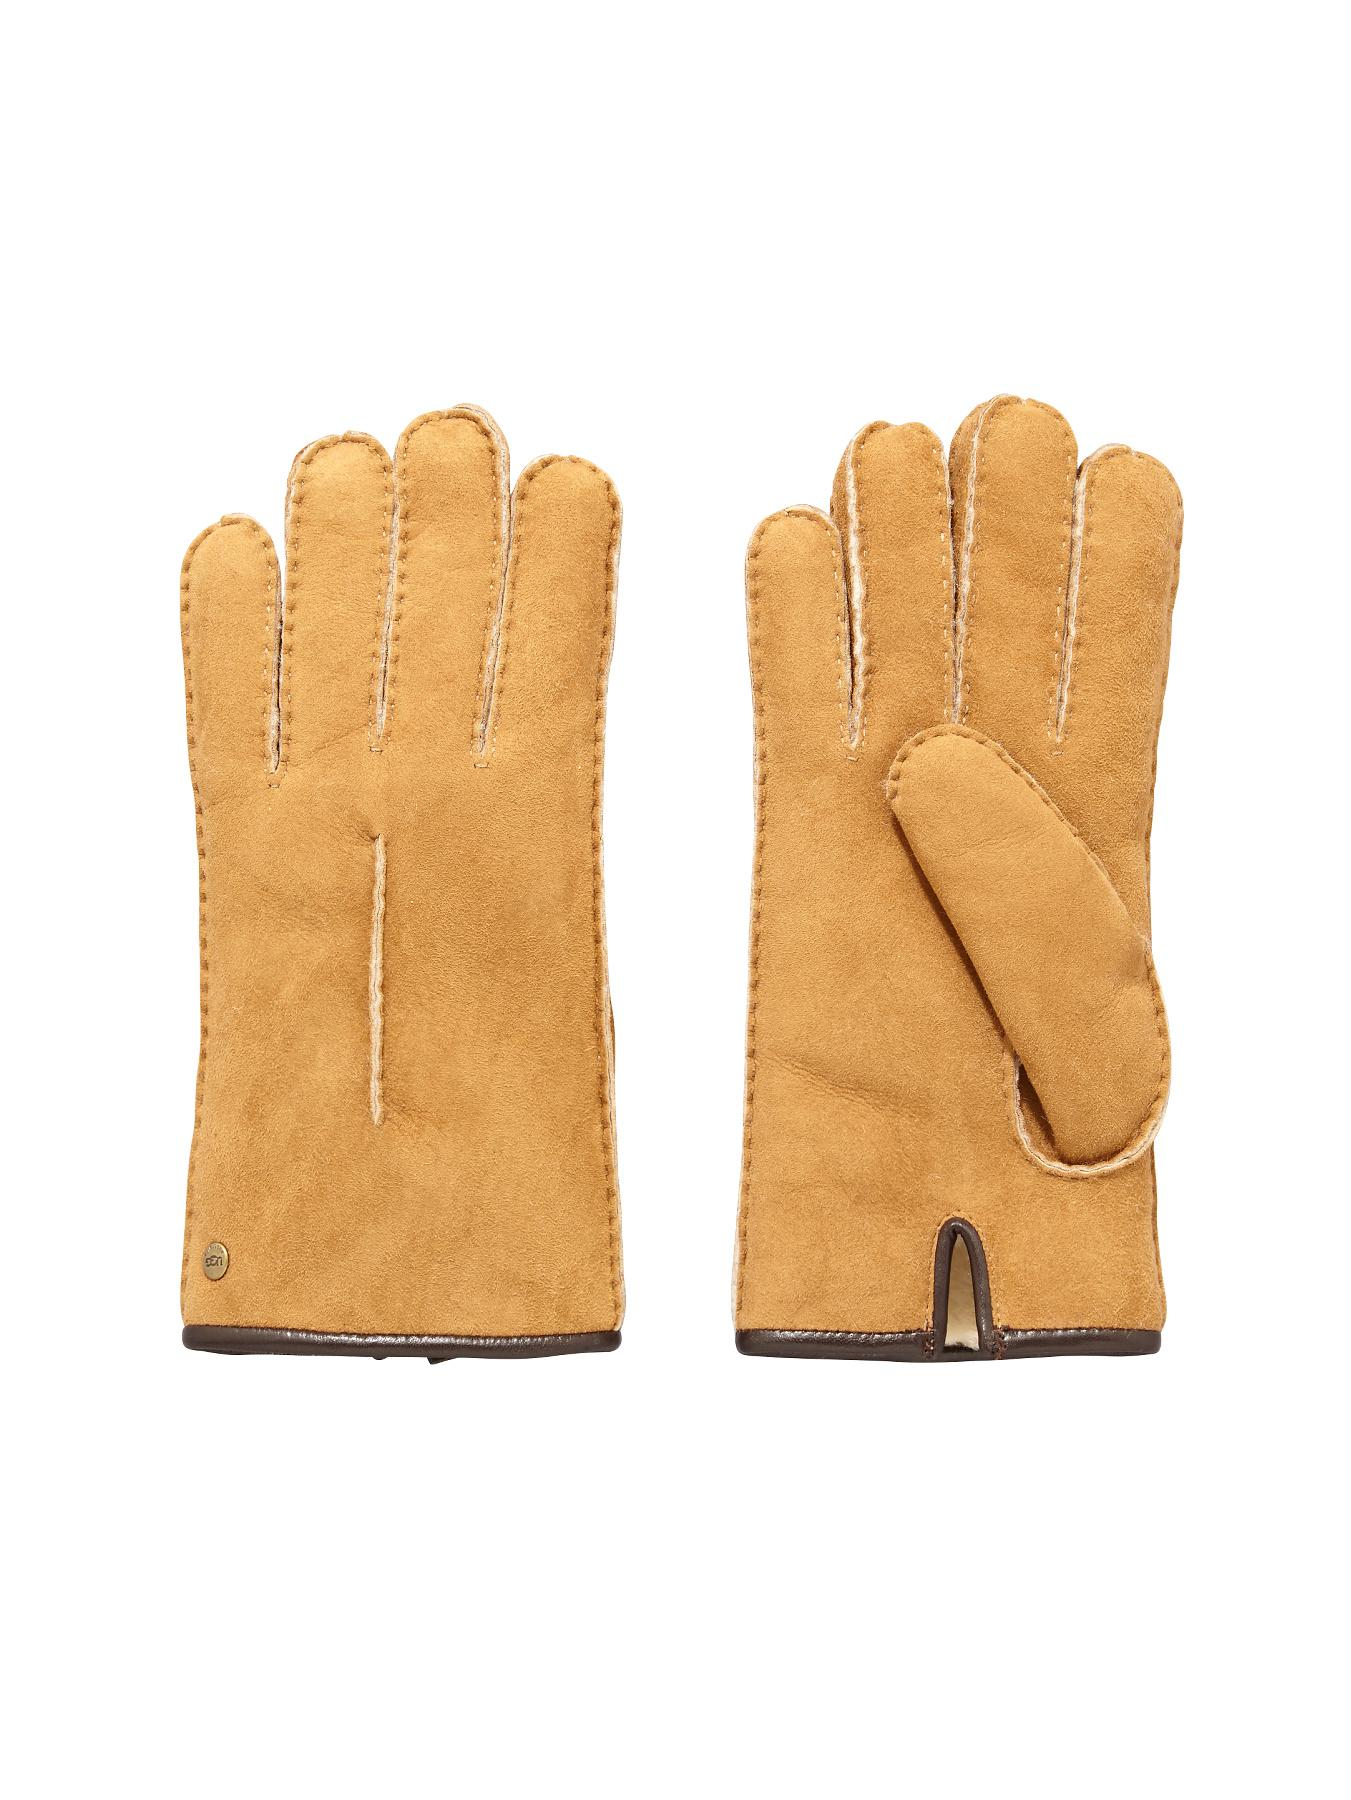 Ugg Australia Classic Shearling Gloves